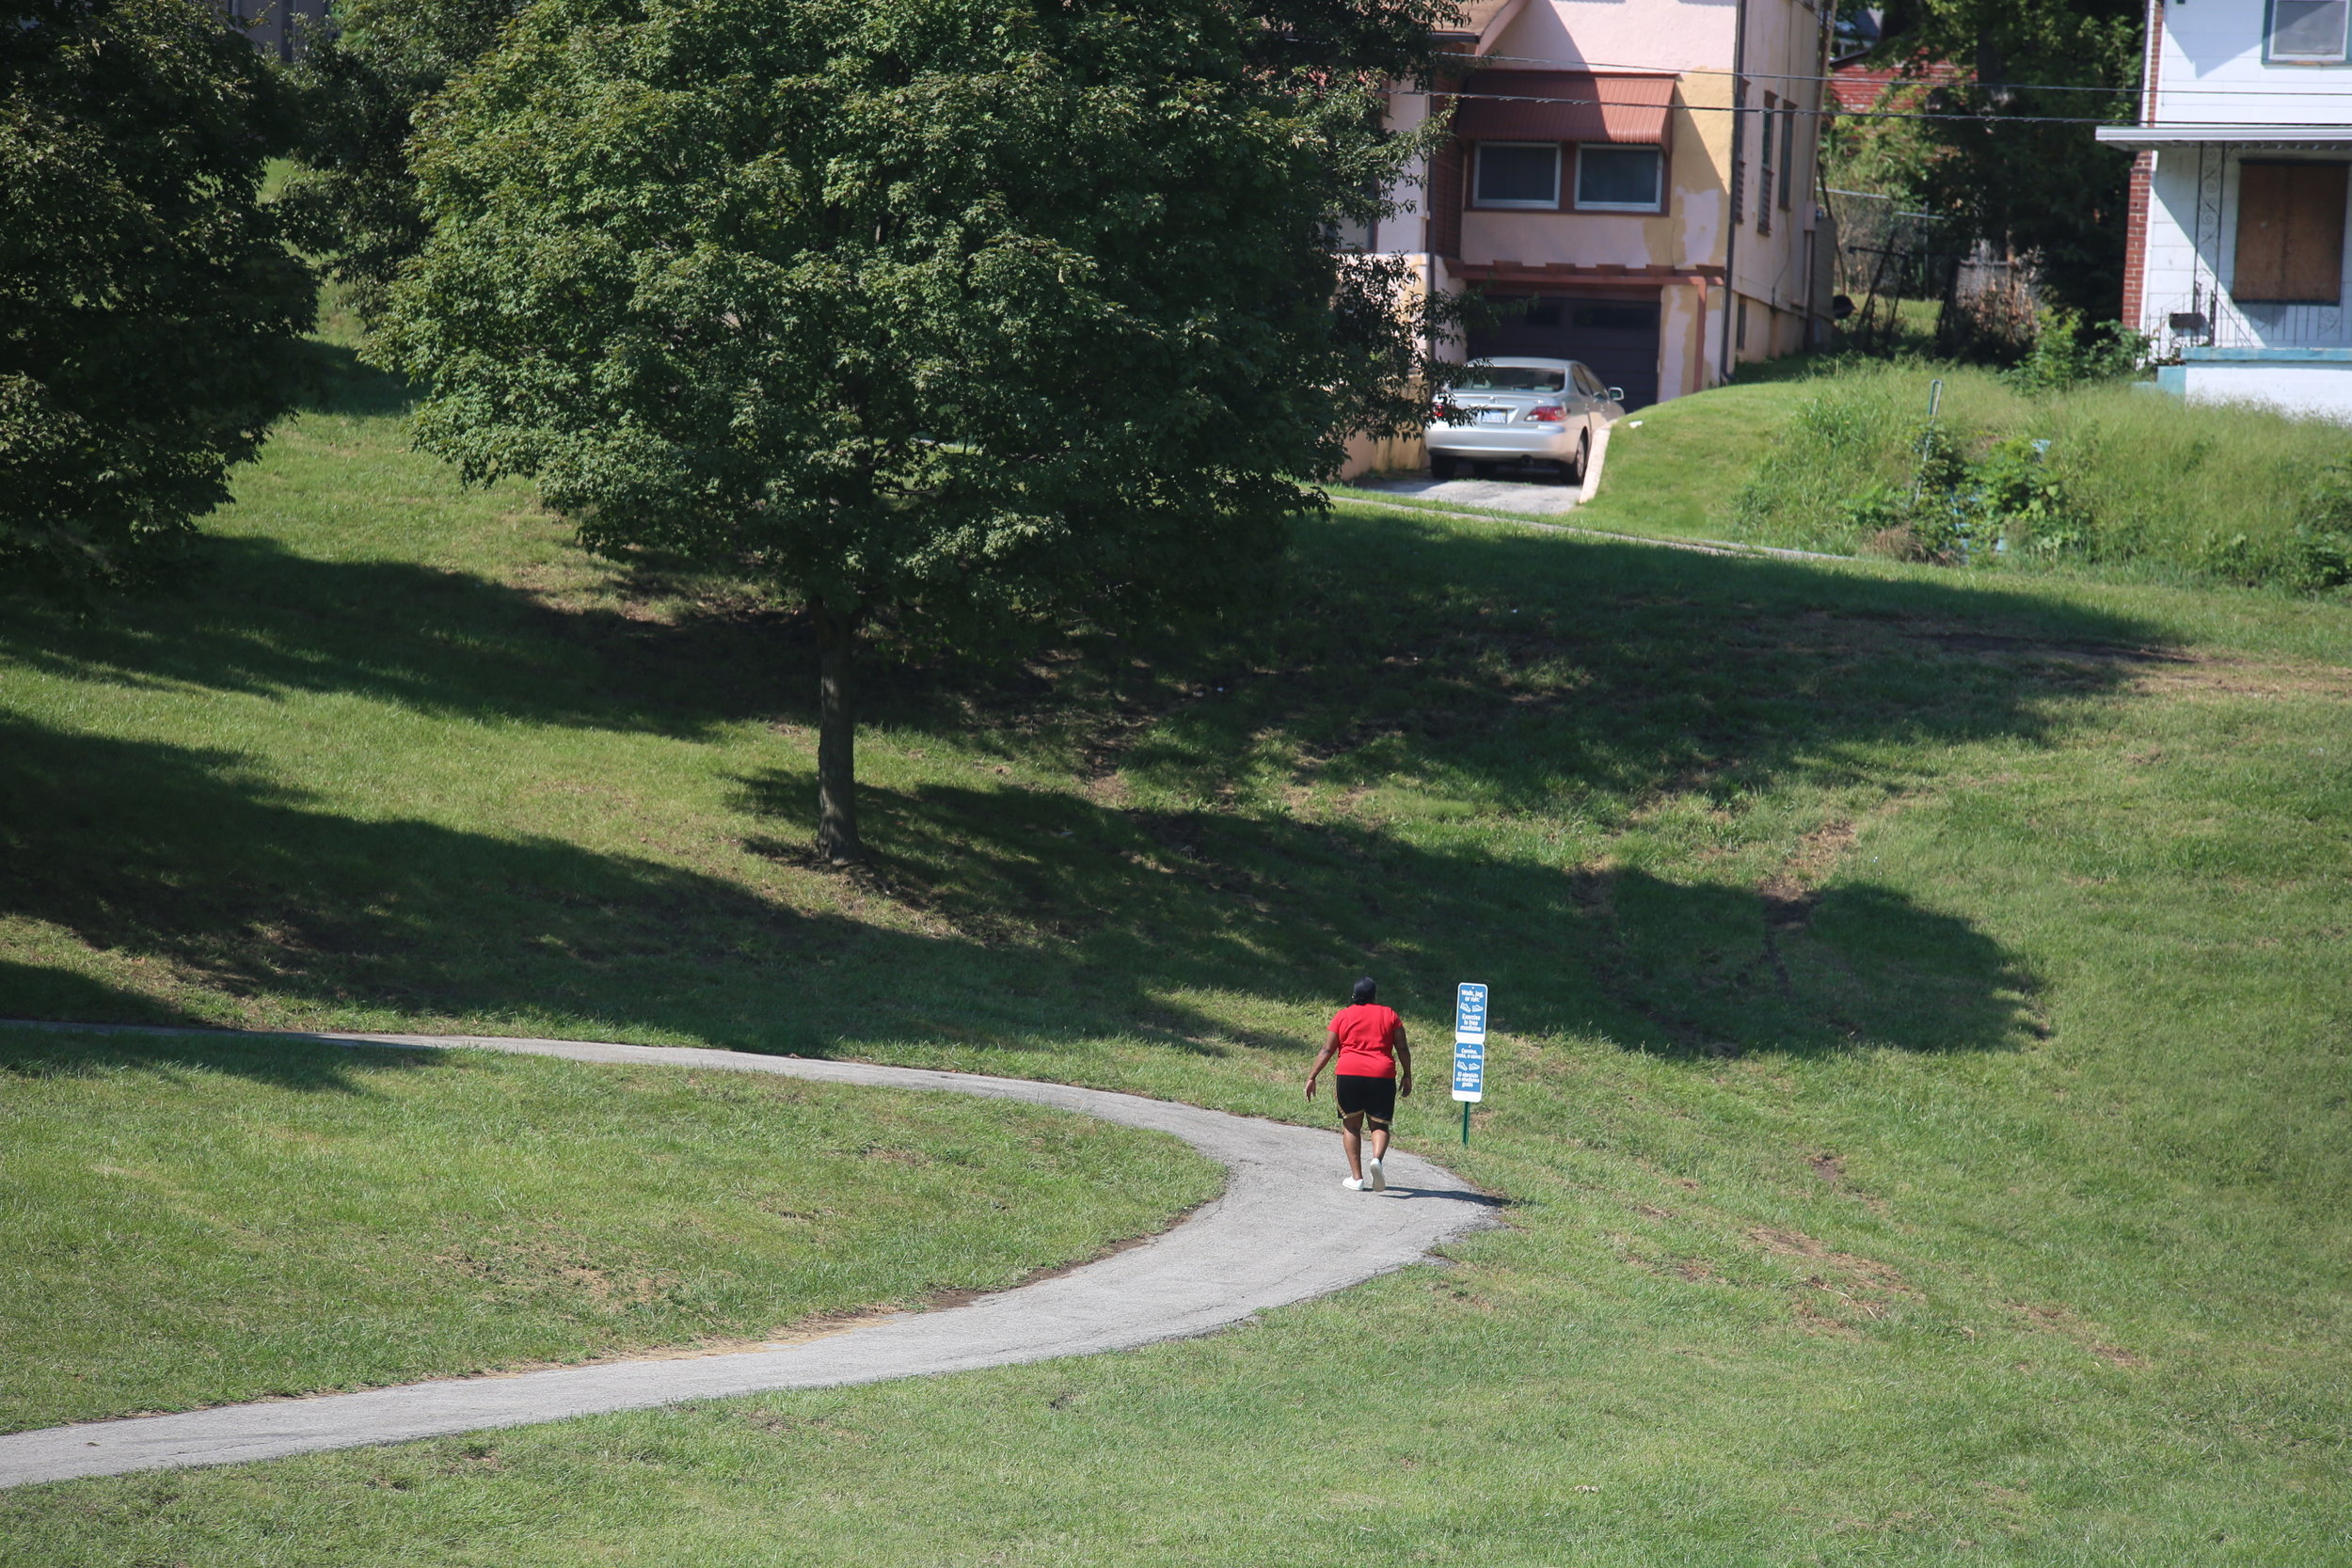 The signage was placed strategically throughout the park to be highly visible to walkers on the trail.